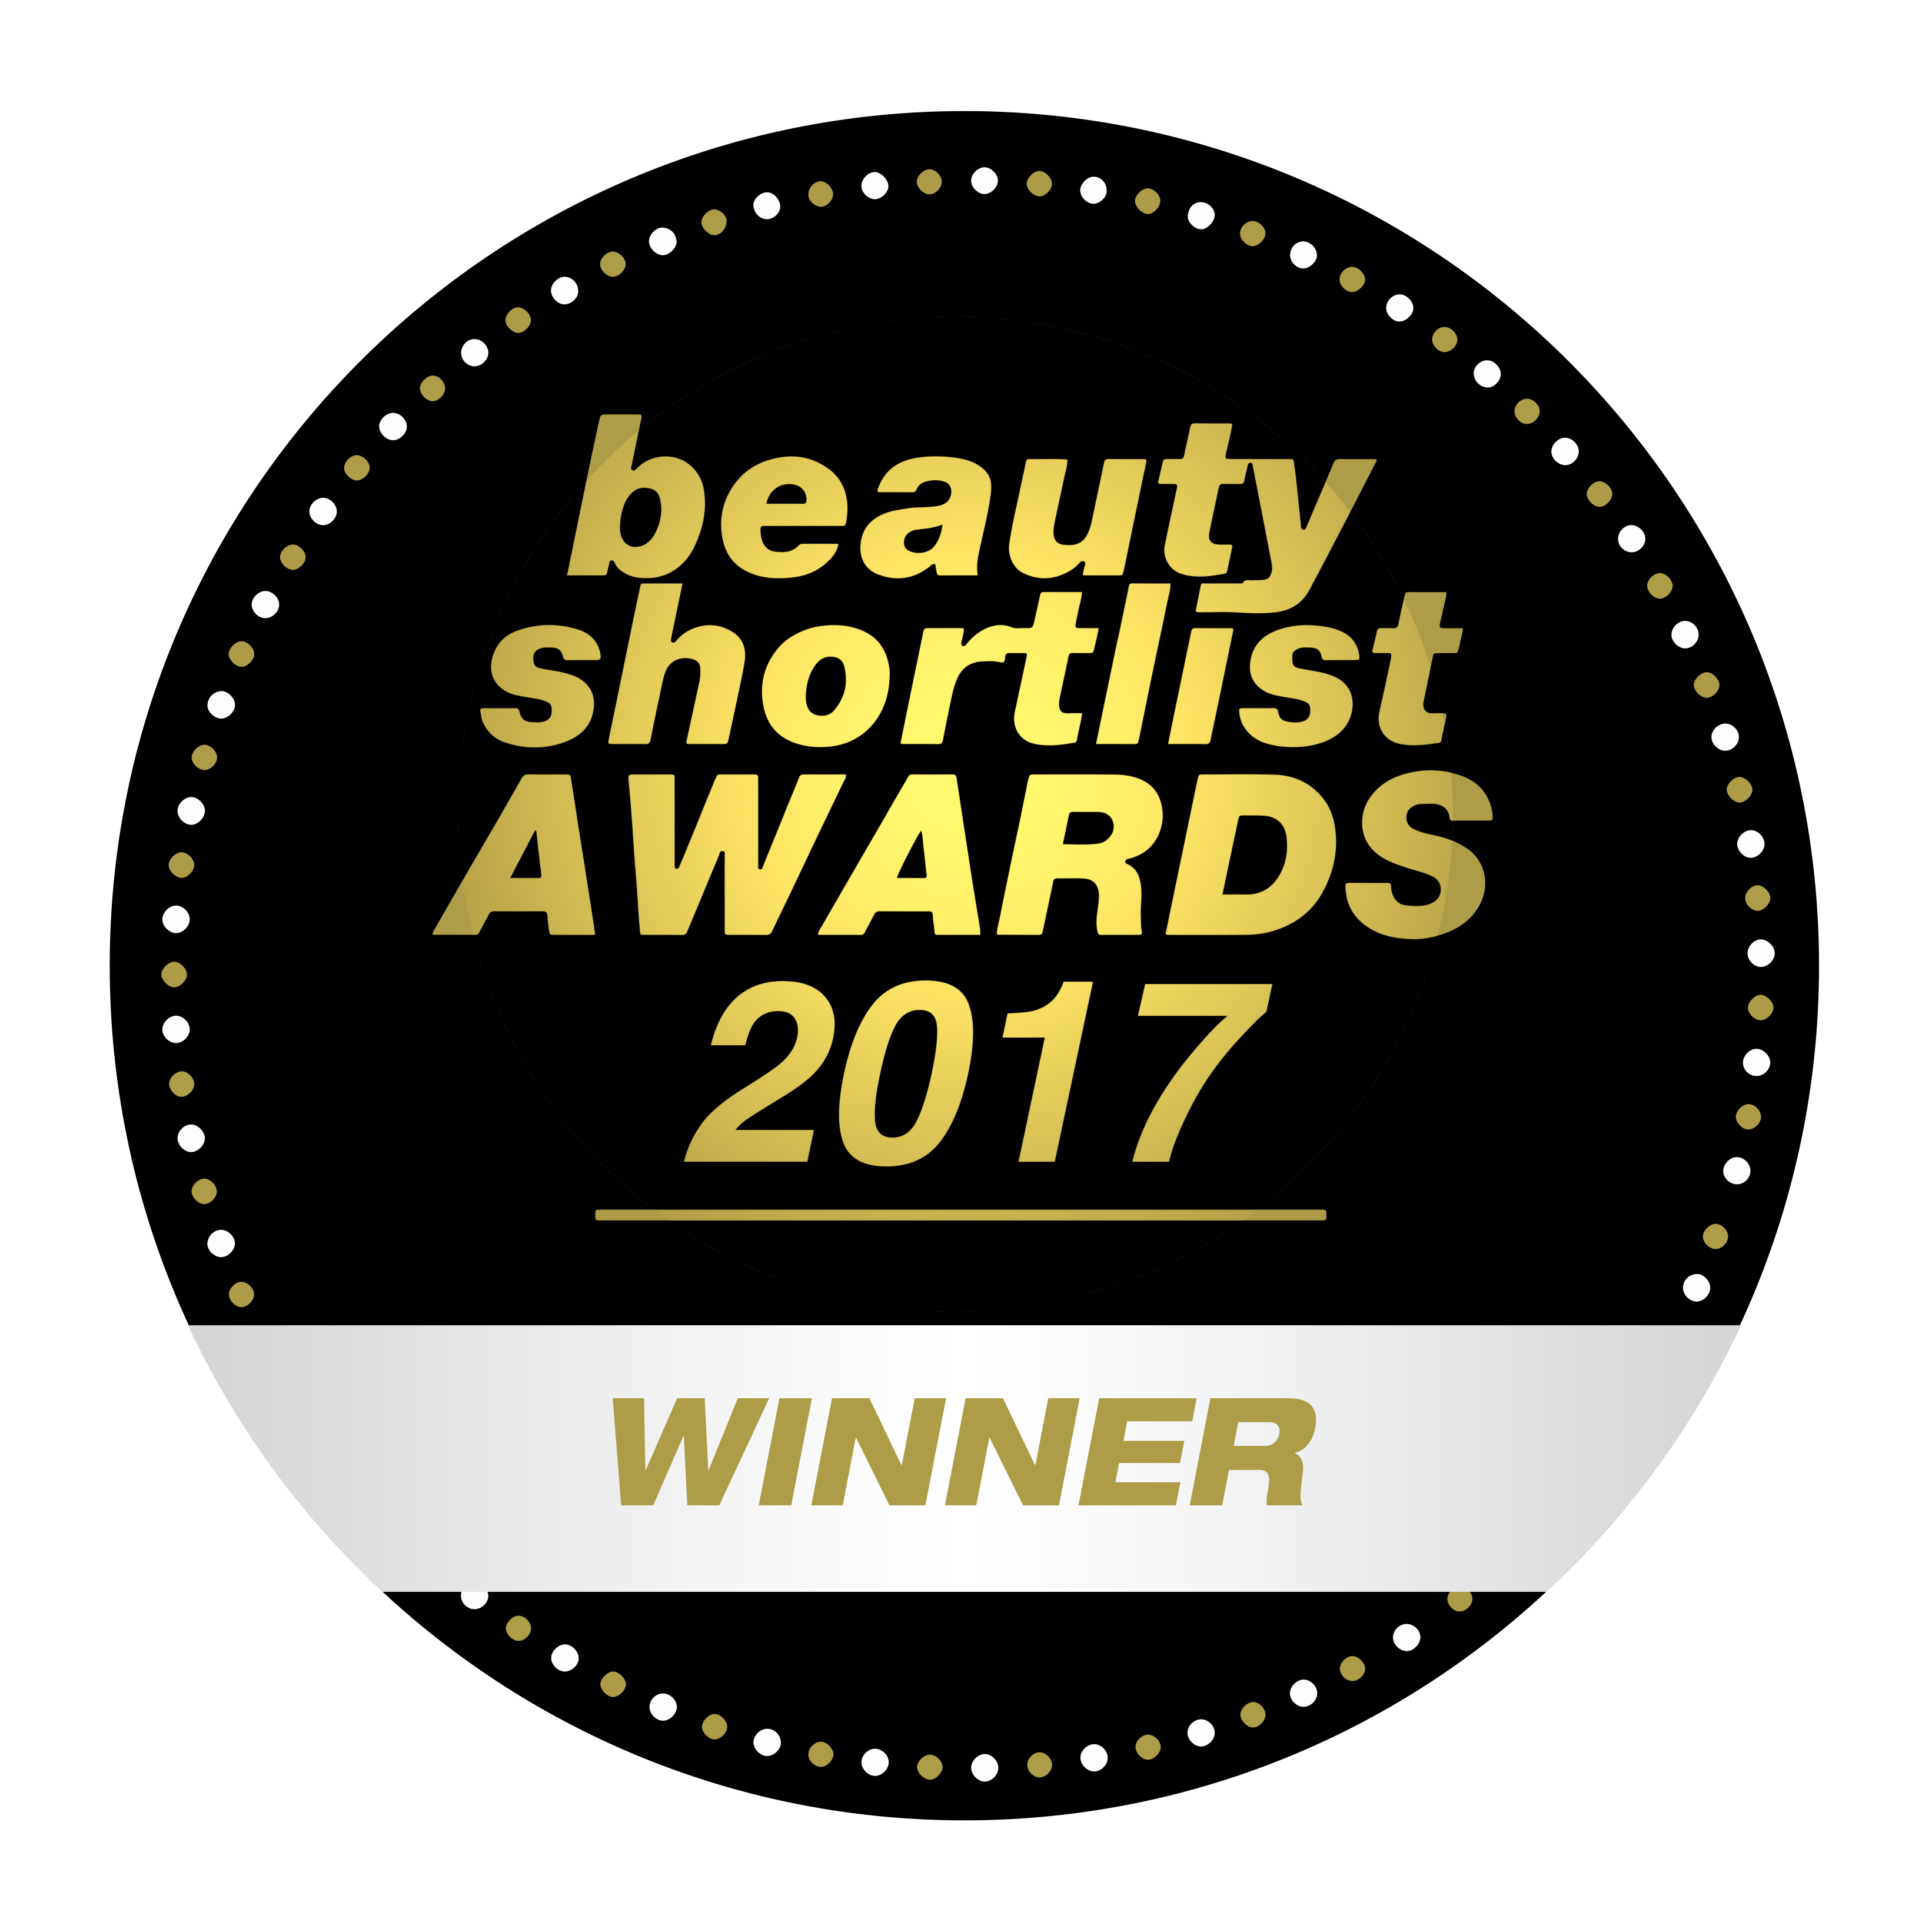 WINNER 2017 BEAUTY SHORTLIST AWARDS 300dpi